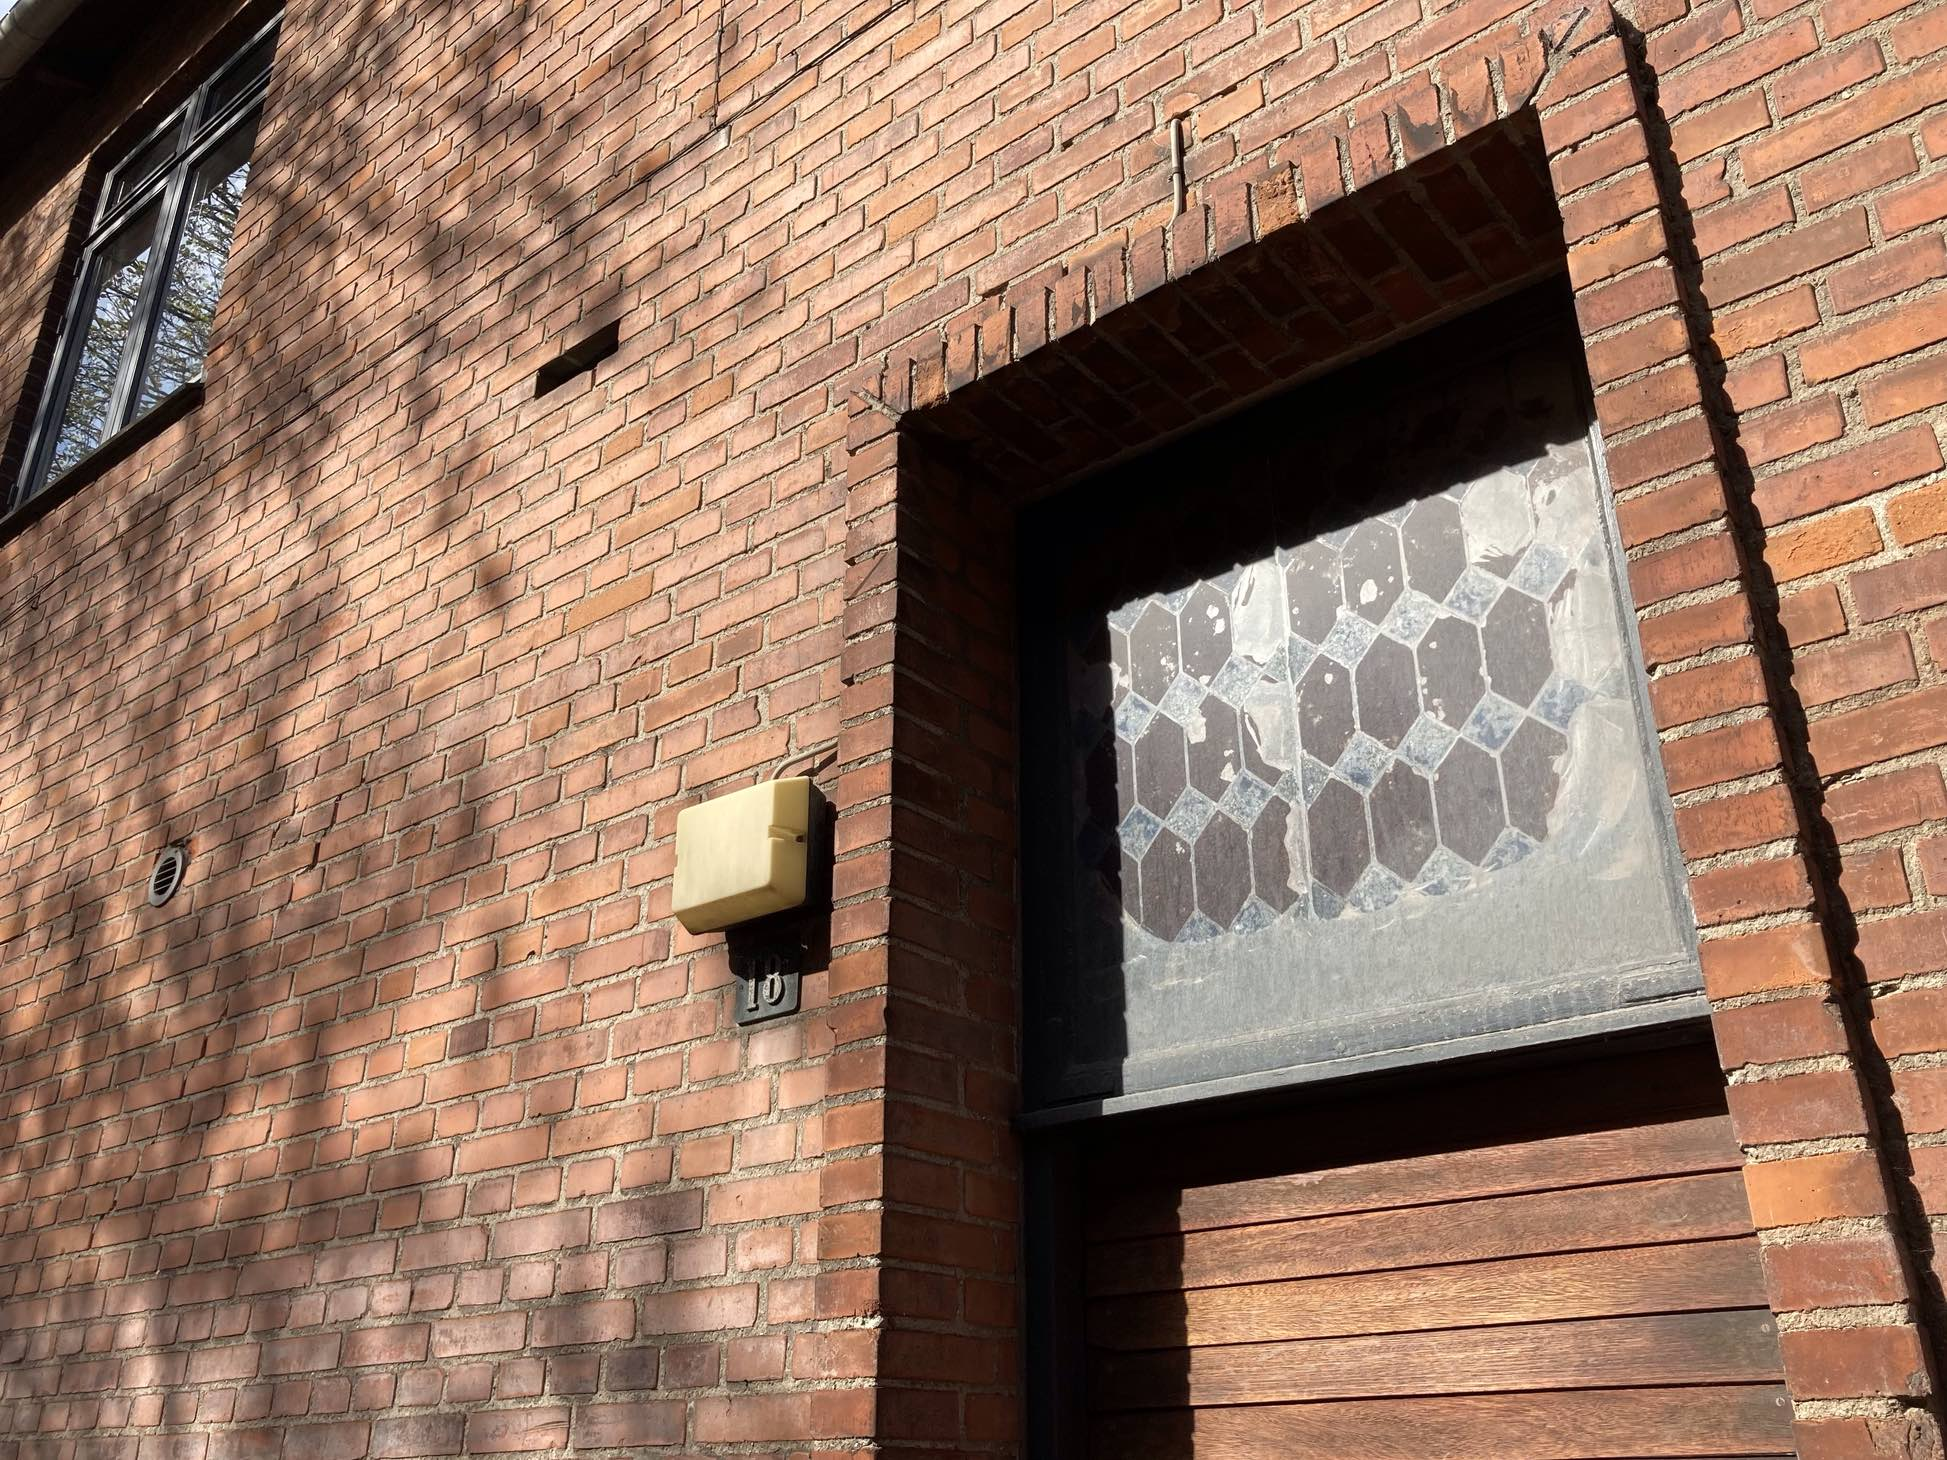 A little stained glass window, unexpected in the doorway of an old factory building, peeking out from behind the grime. Shadow play on the surrounding brick – one of them missing. An off-yellow door light. A ventilation hole. An expressionist angle after all my straightness.